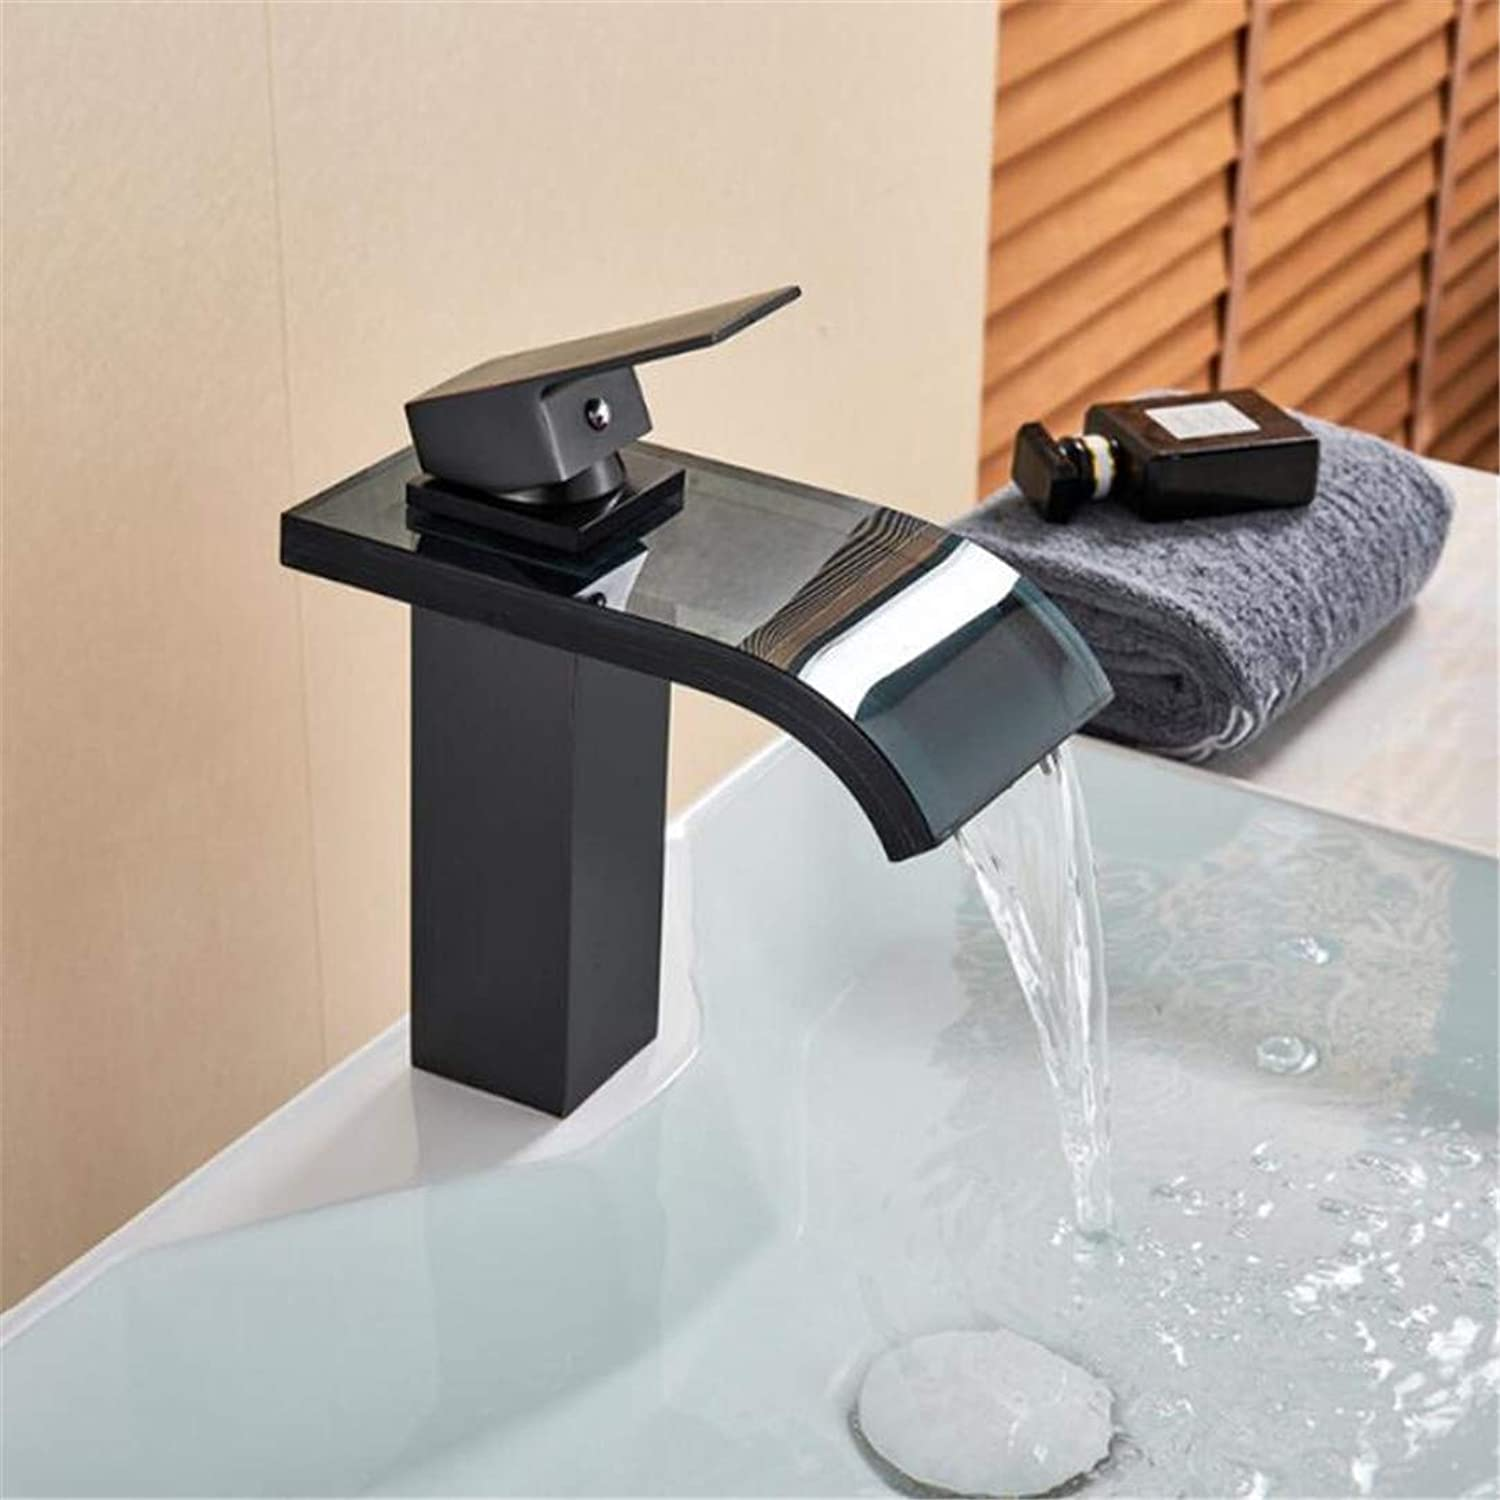 Faucet Washbasin Mixer Bathroom Waterfall Basin Sink Faucet Black Bronze Single Hole Vessel Sink Mixer Tap Glass Spout Vanity Sink Faucet